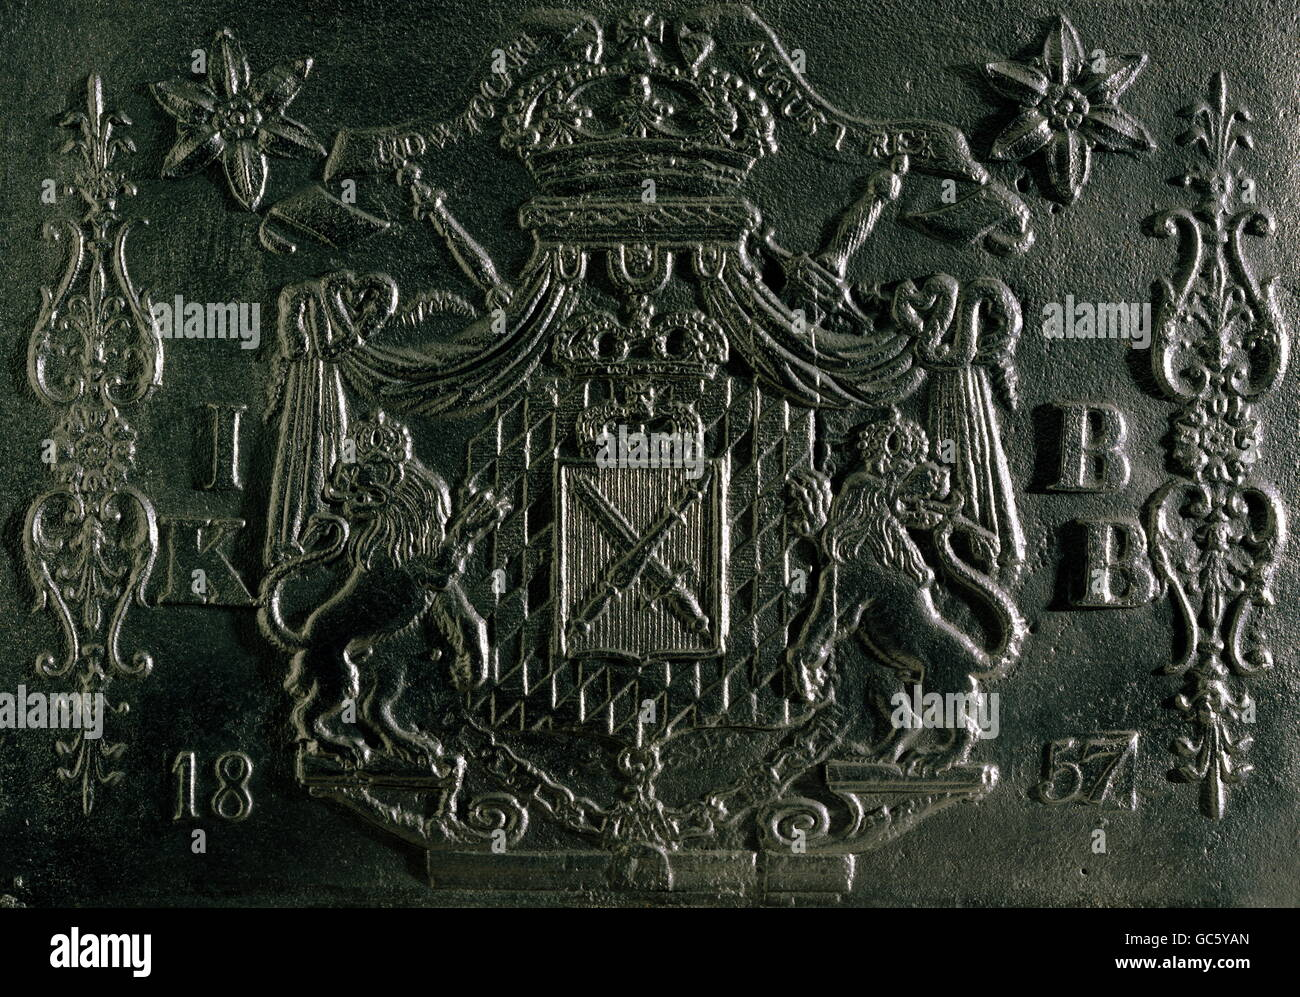 heraldry, coat of arms, Germany, Bavarian kingdom, relief, cast iron, oven plate, ironworks of the former Archbishop, - Stock Image